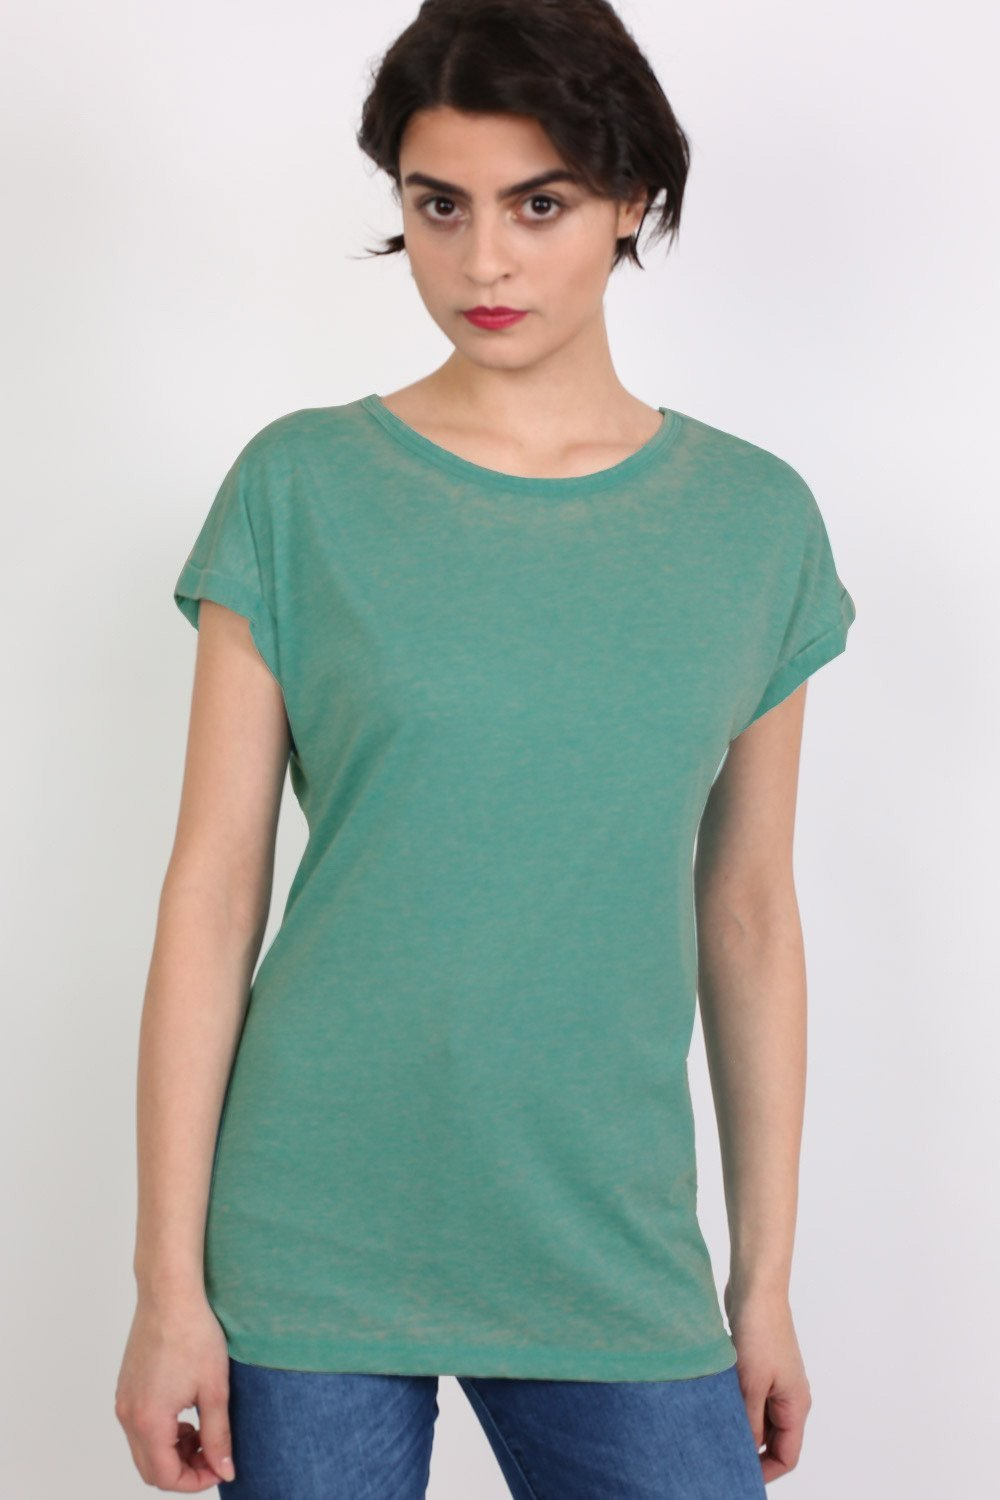 Turn Up Cuff Burnout Top in Jade Green 0